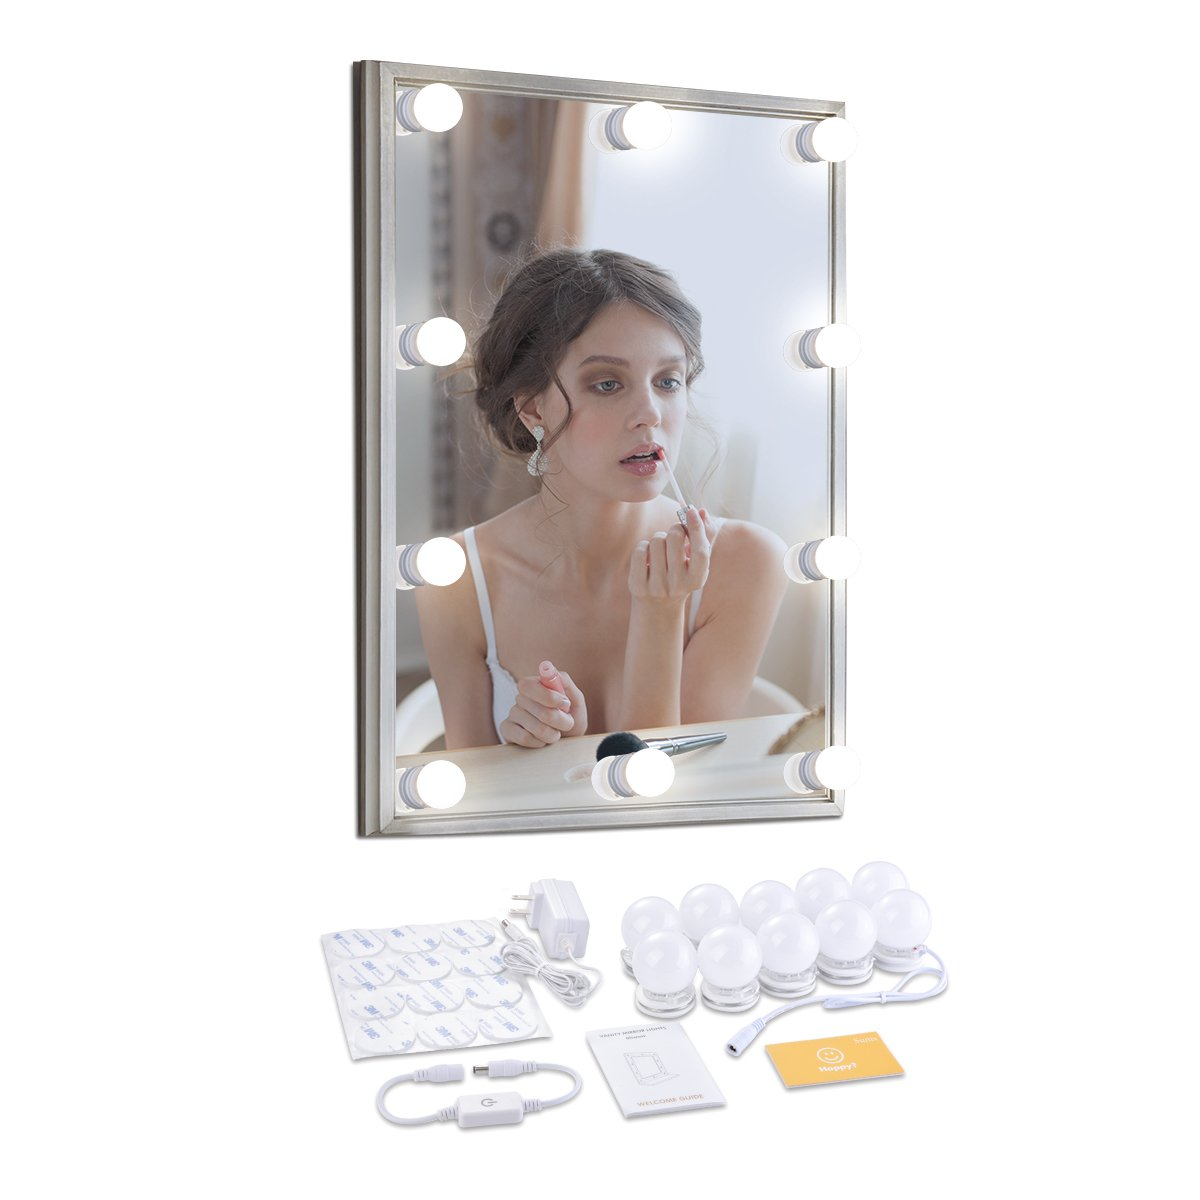 Memoru Hollywood Style LED Vanity Makeup Mirror Lights Kit with 10 Dimmable Light Bulbs Adjustable Lighting Fixture Strip 12ft. for Makeup Mirror in Bedroom Dressing Room Bathroom, Natural White